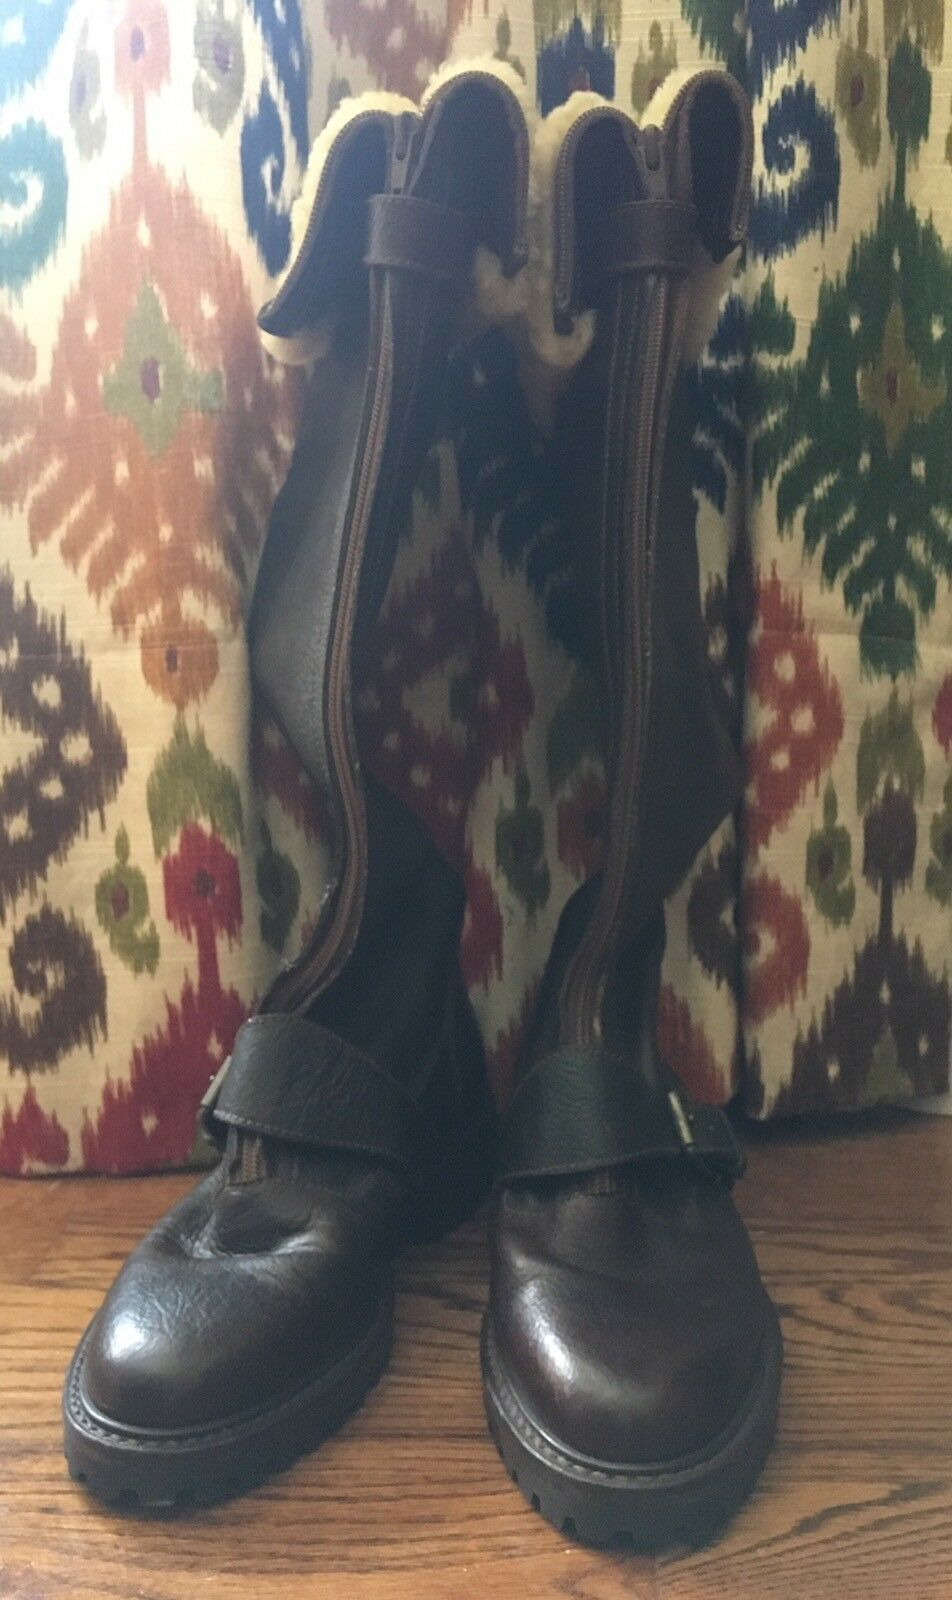 POLO RALPH LAUREN COUNTRY Vintage Brown Leather Shearling Aviation Boots 7.5 B